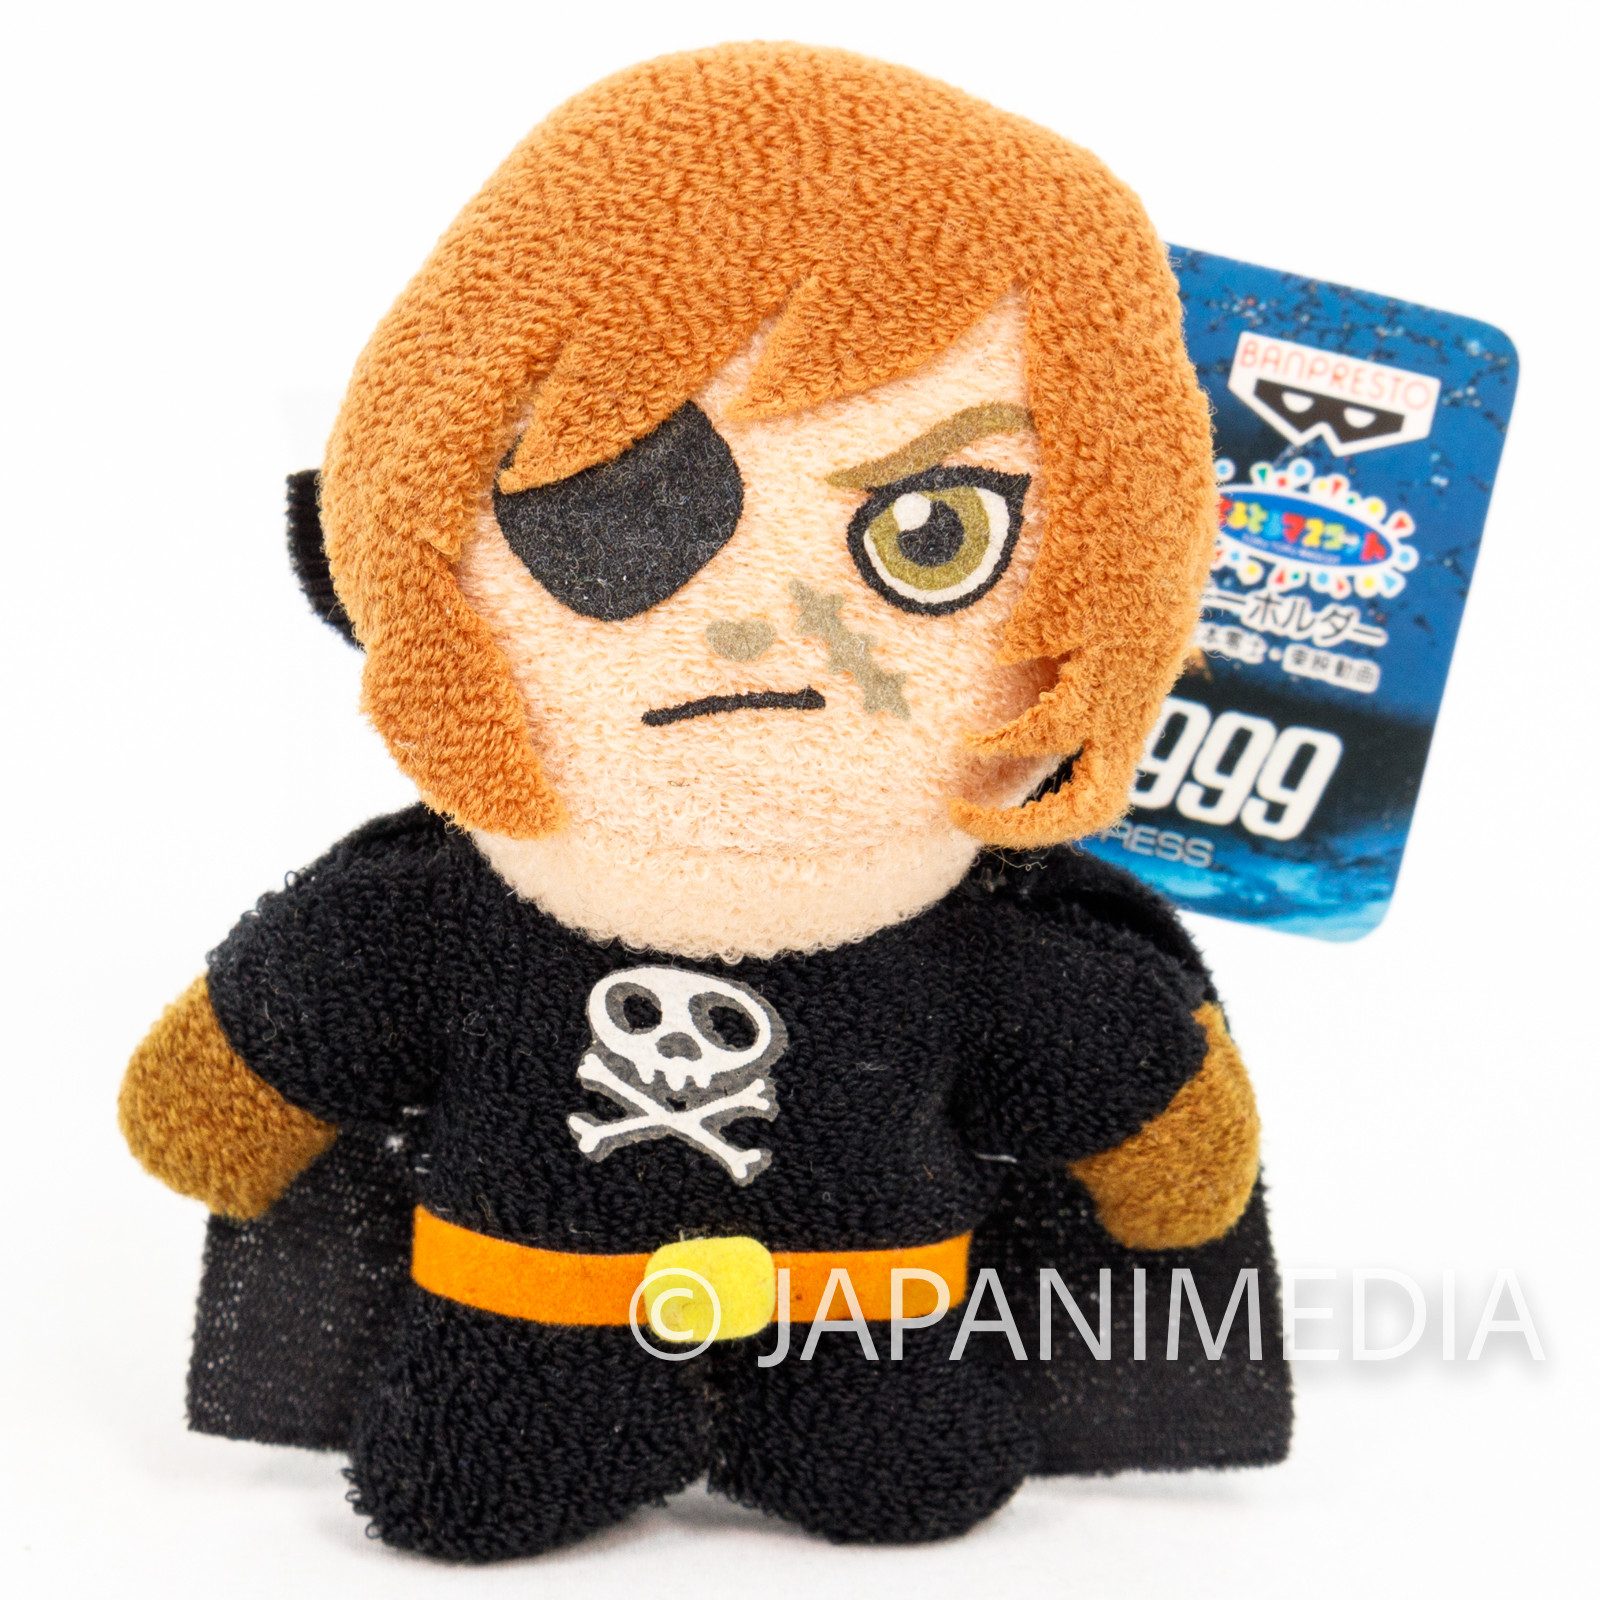 Galaxy Express 999 Captain Harlock Plush Doll Figure Keychain Banpresto